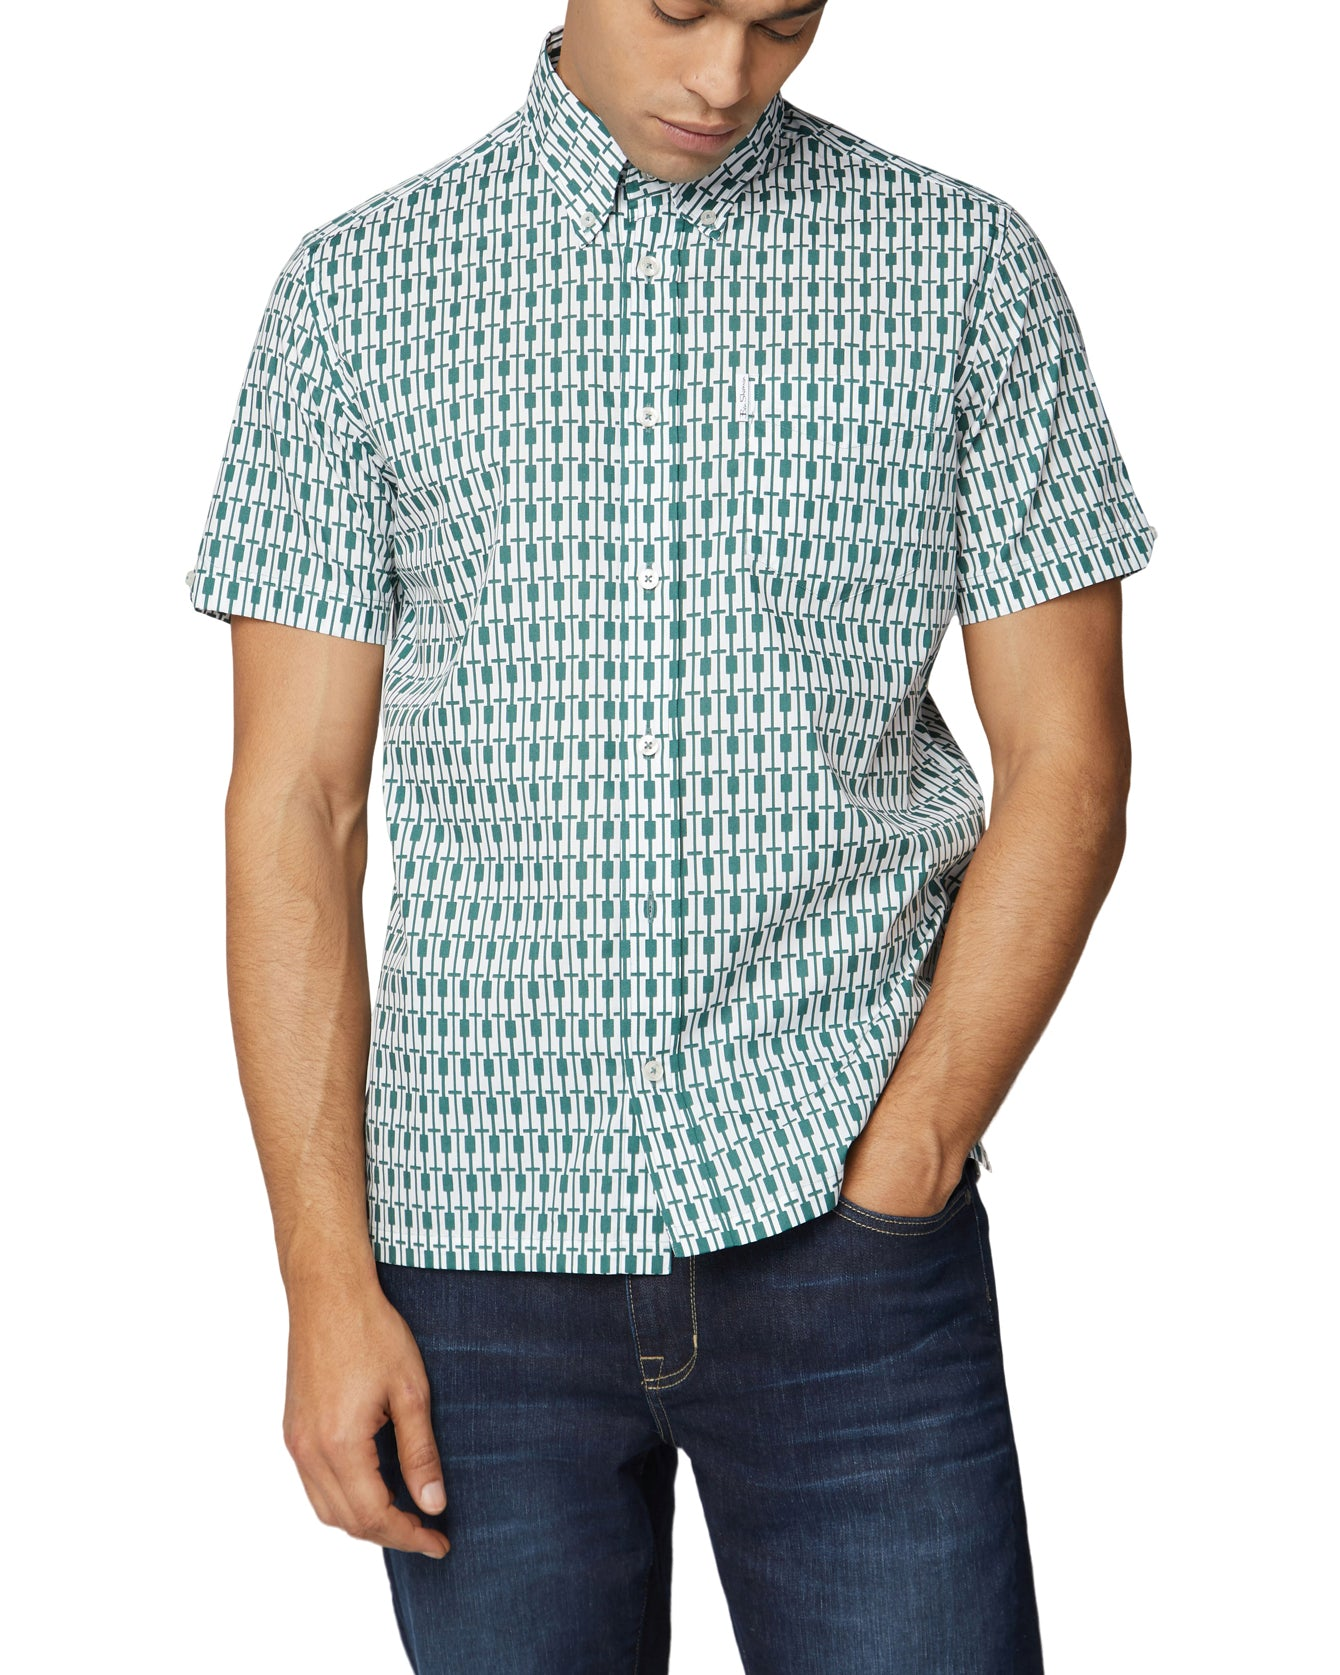 Short-Sleeve Archive Piper Shirt - Trekking Green